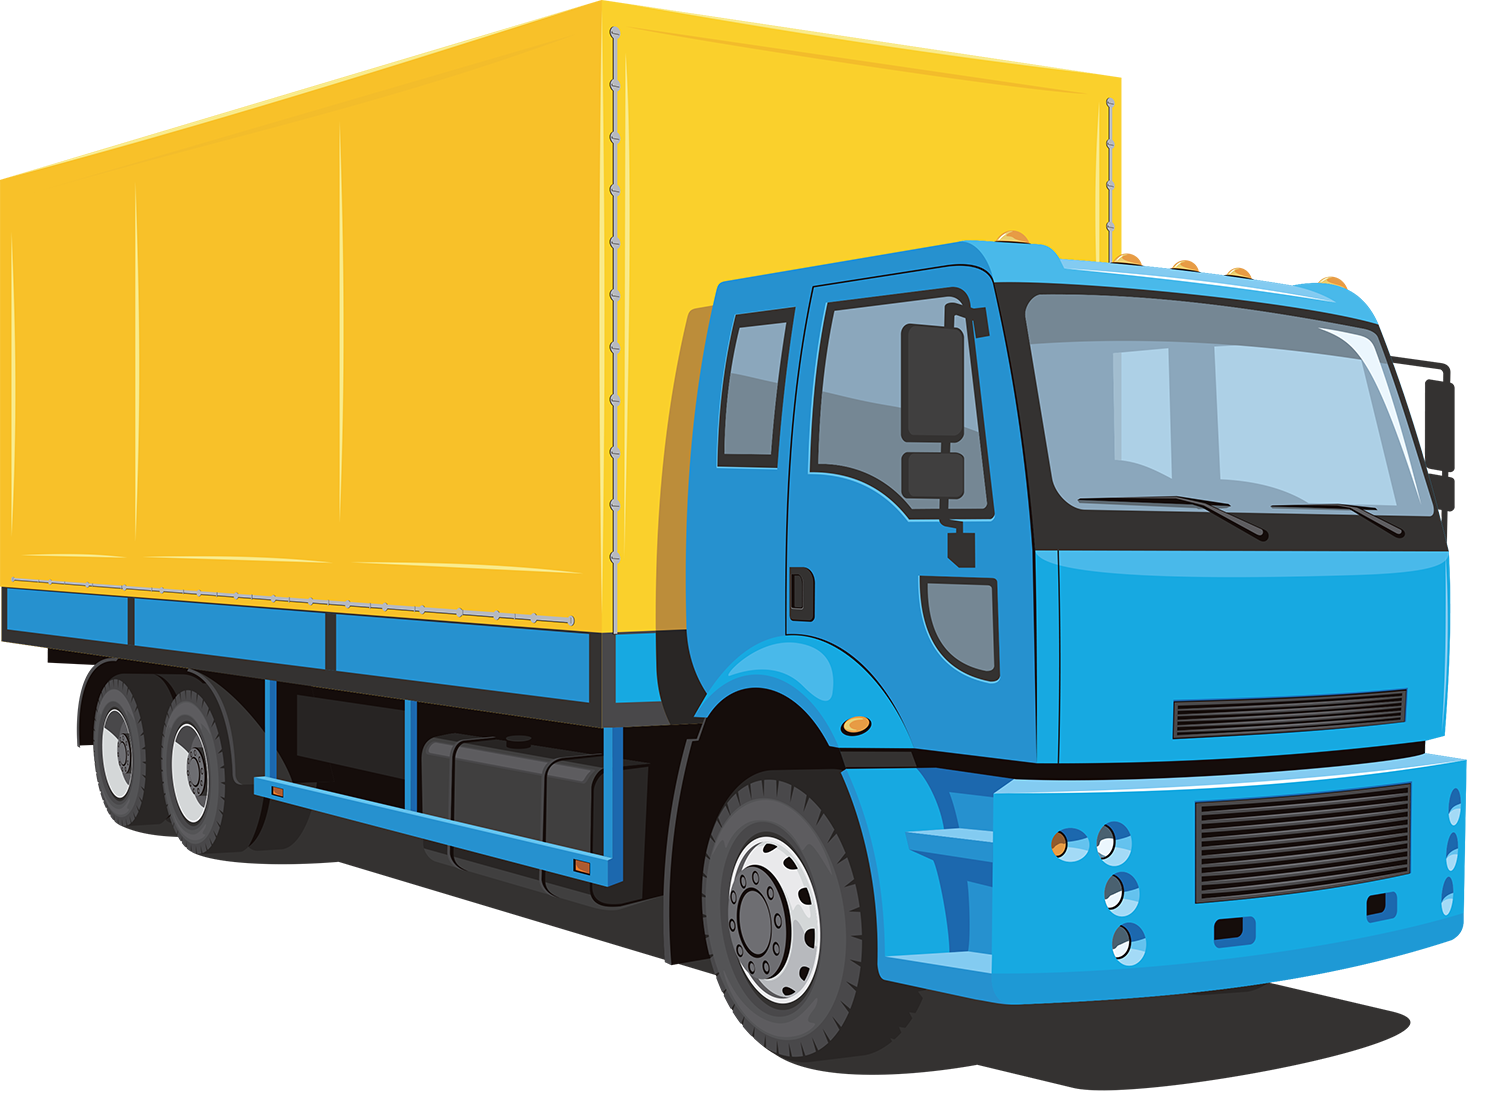 truck, lorry png transparent lorry images pluspng #17373